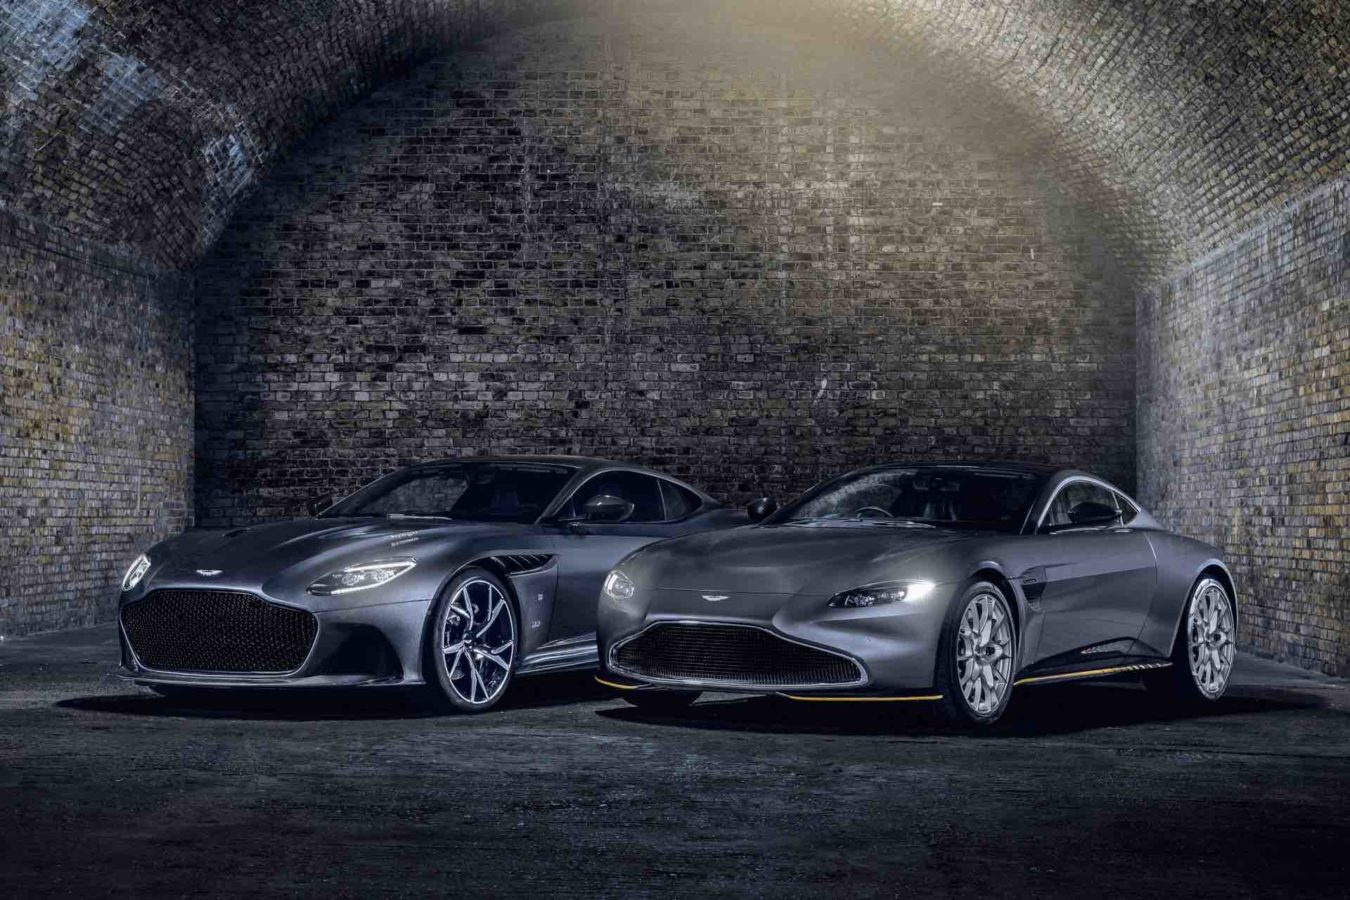 Aston Martin introduces two new limited-edition models inspired by James Bond